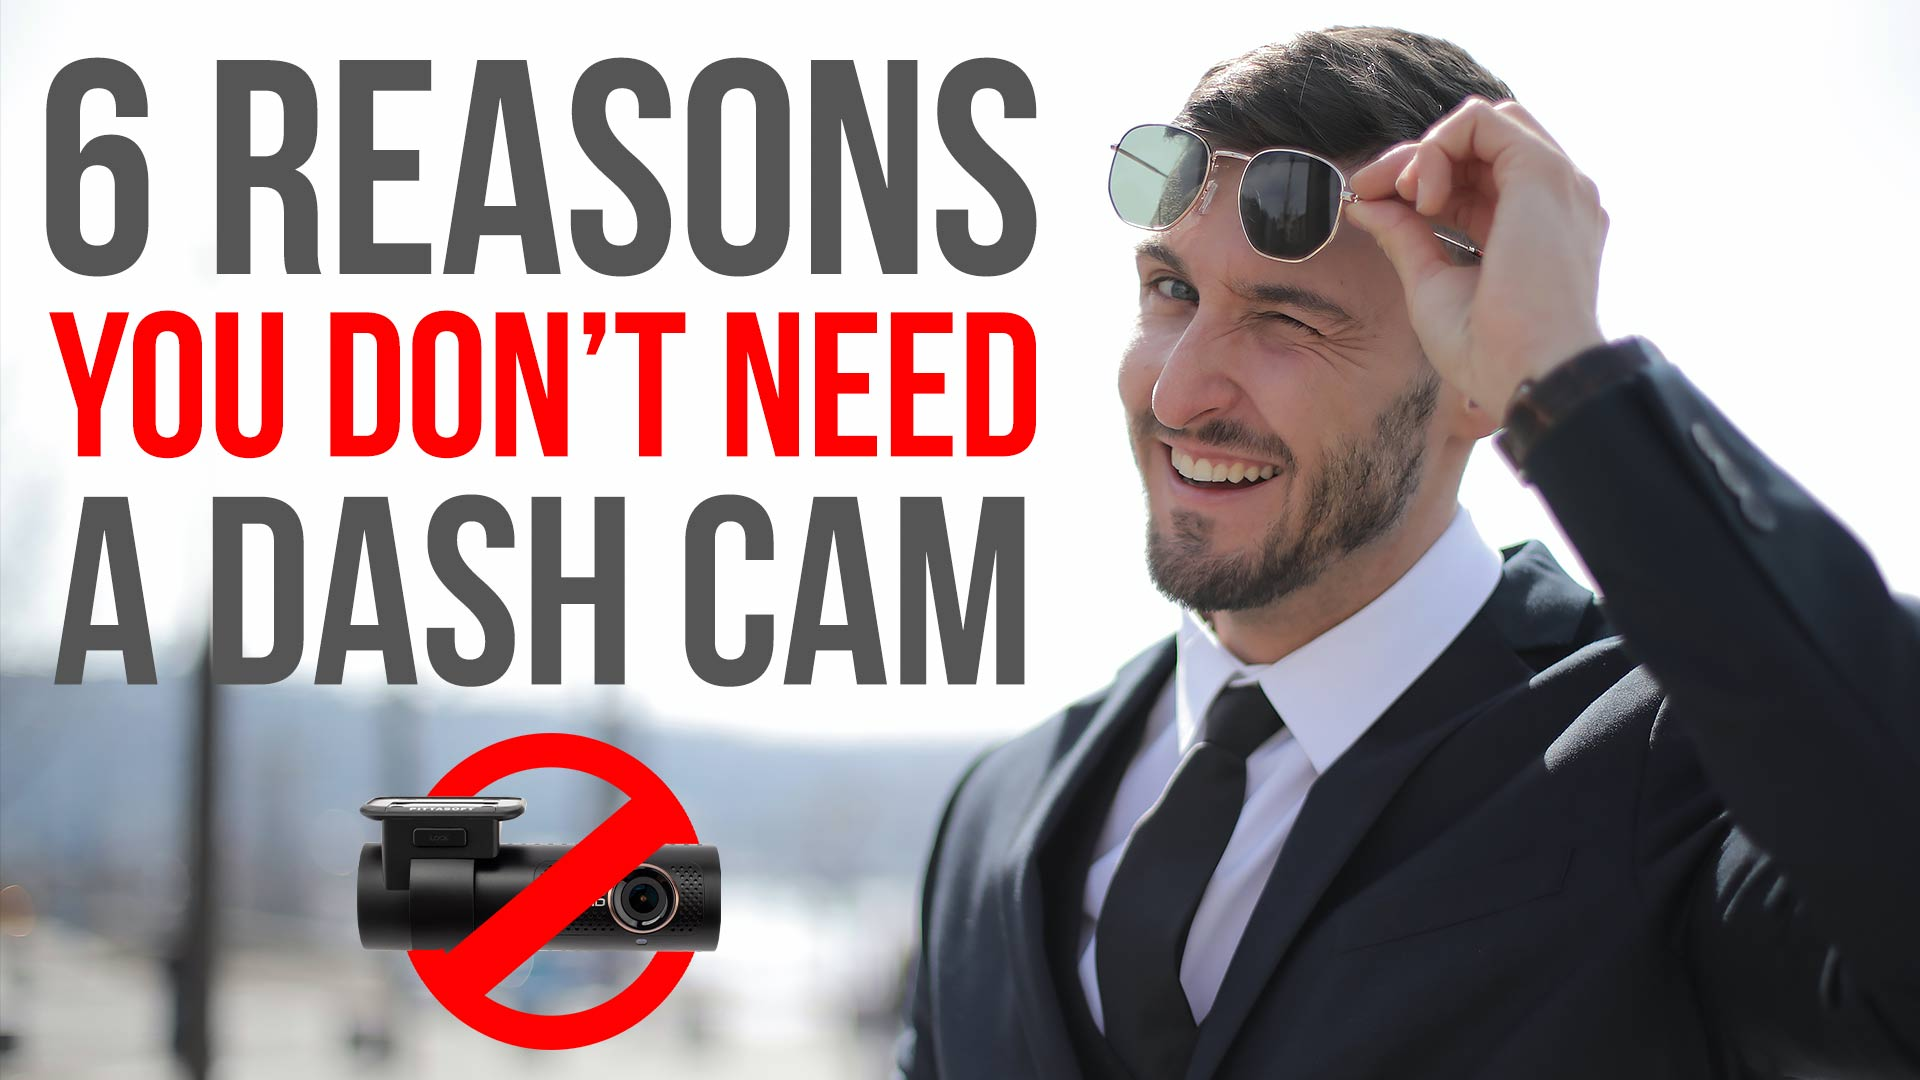 6 Reasons You Don't Need a Dash Cam